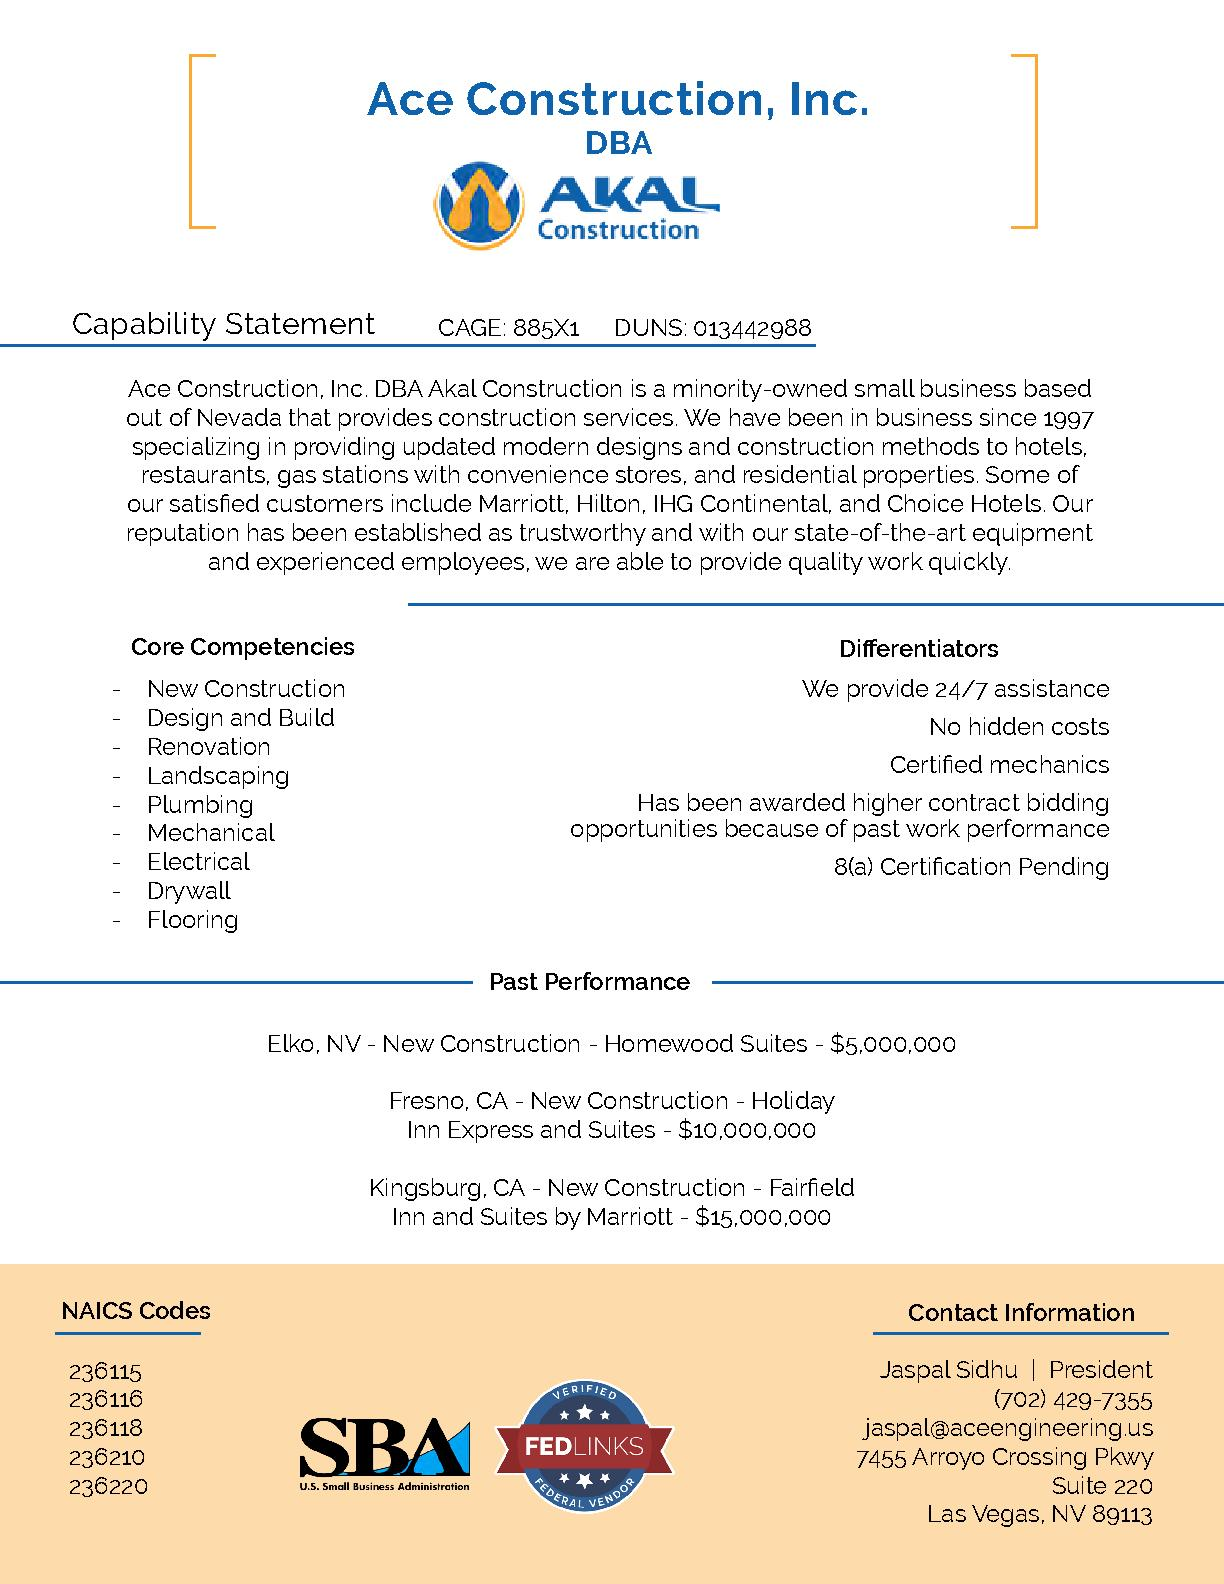 Akal construction